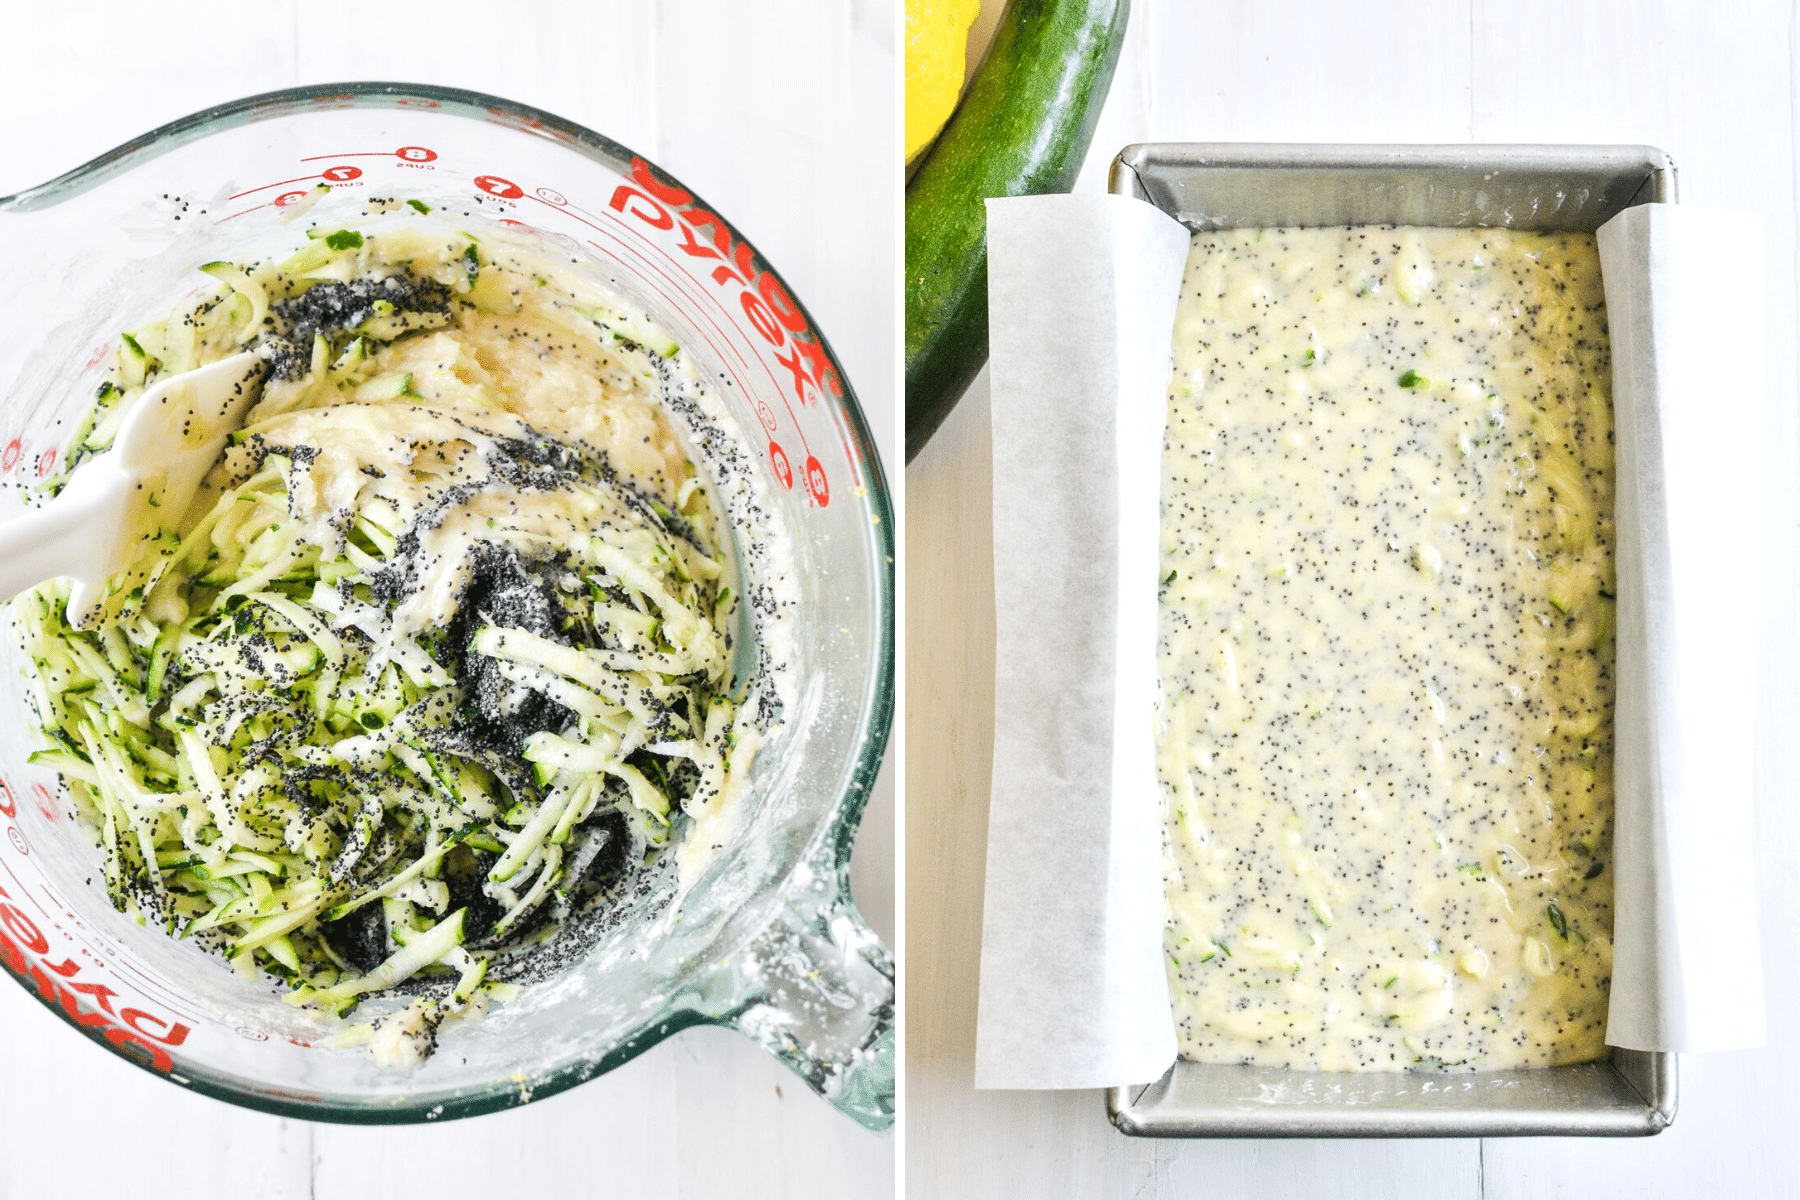 Mixing the batter for lemon poppy seed zucchini bread.